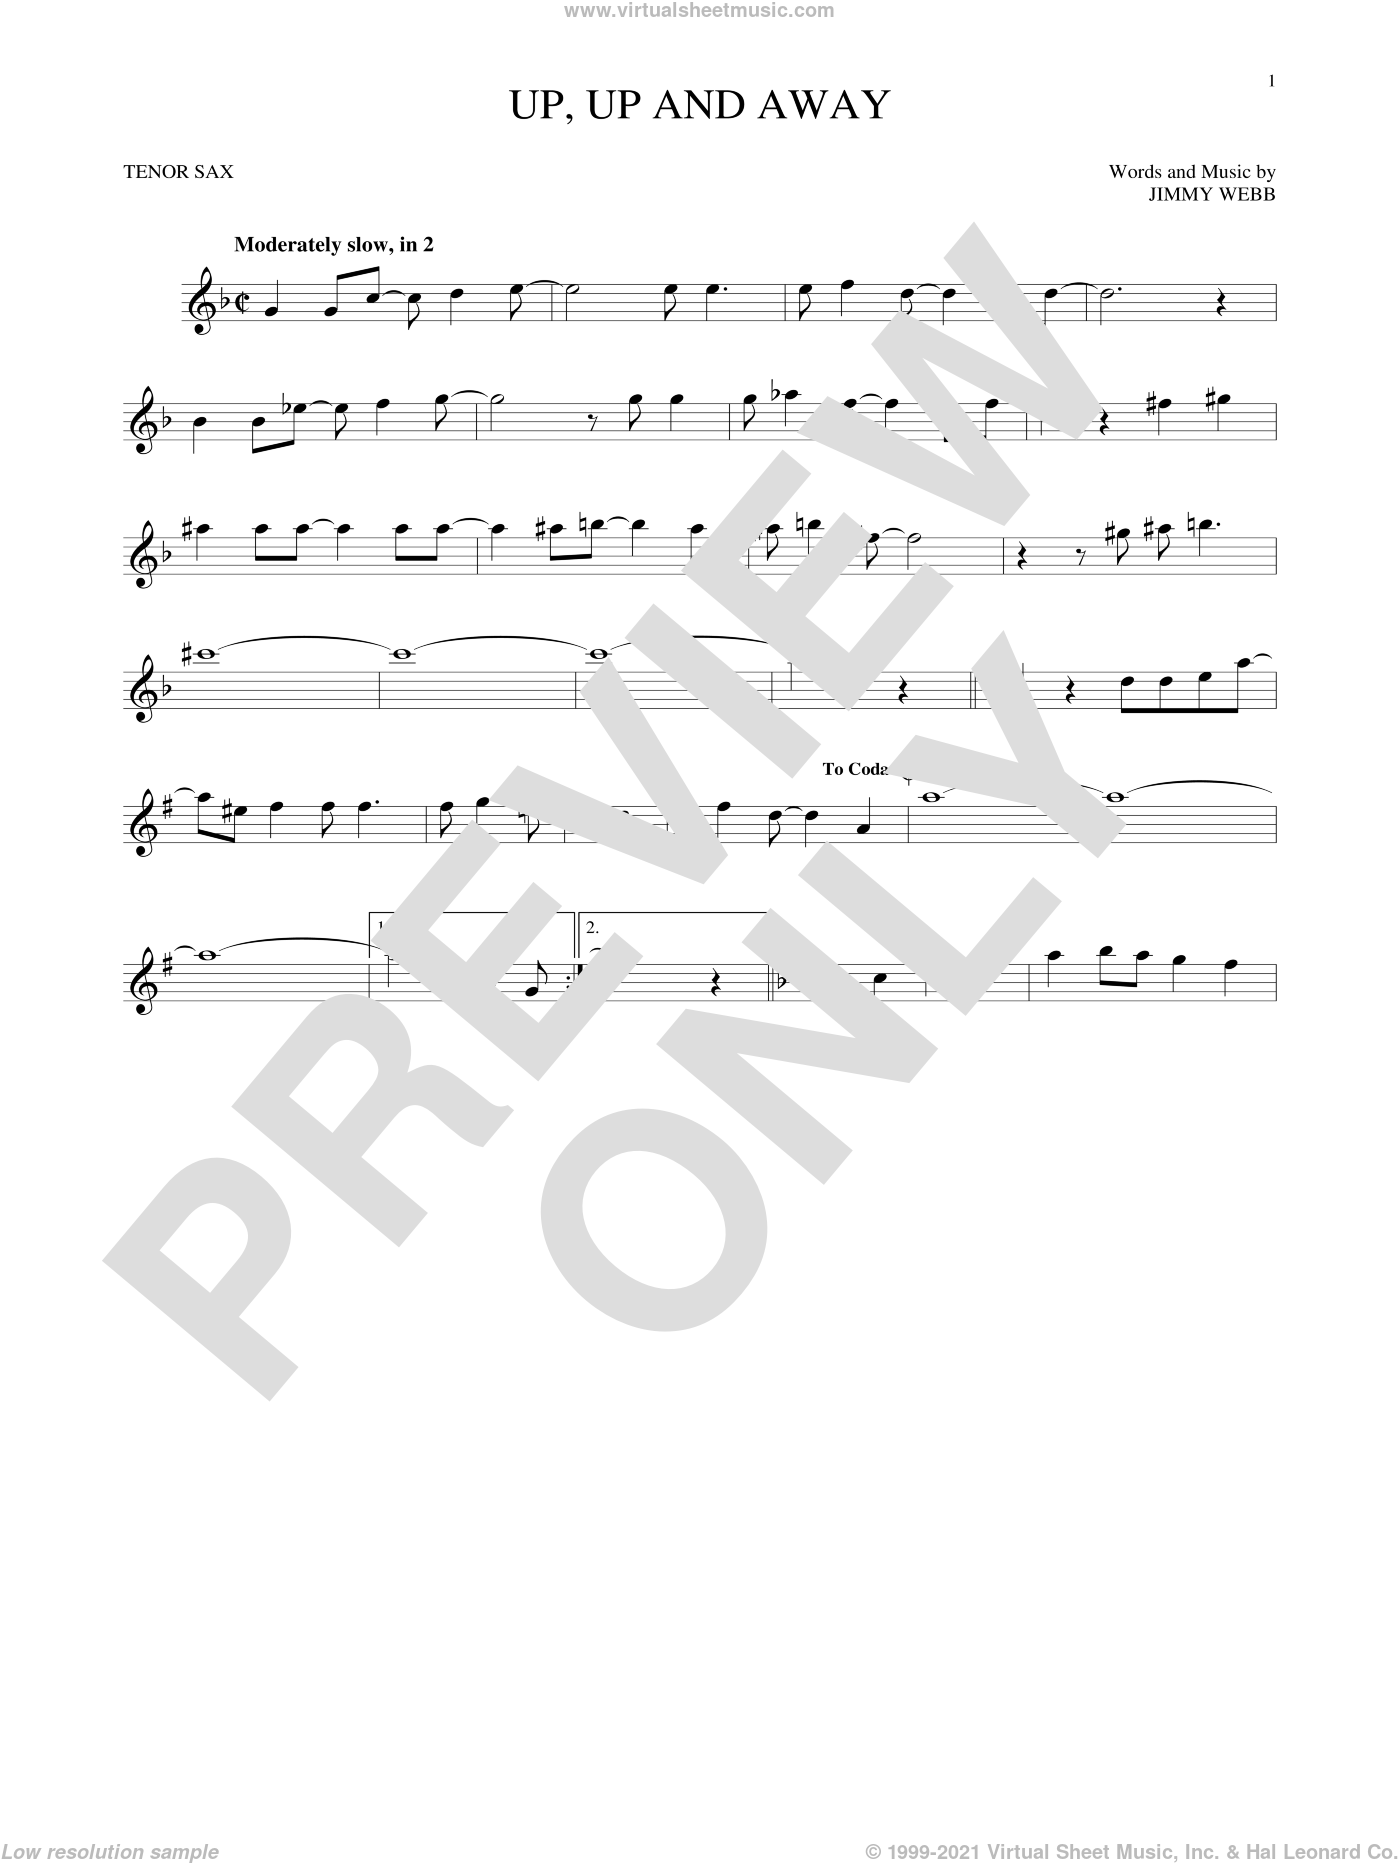 Up, Up And Away sheet music for tenor saxophone solo by The Fifth Dimension and Jimmy Webb, intermediate skill level